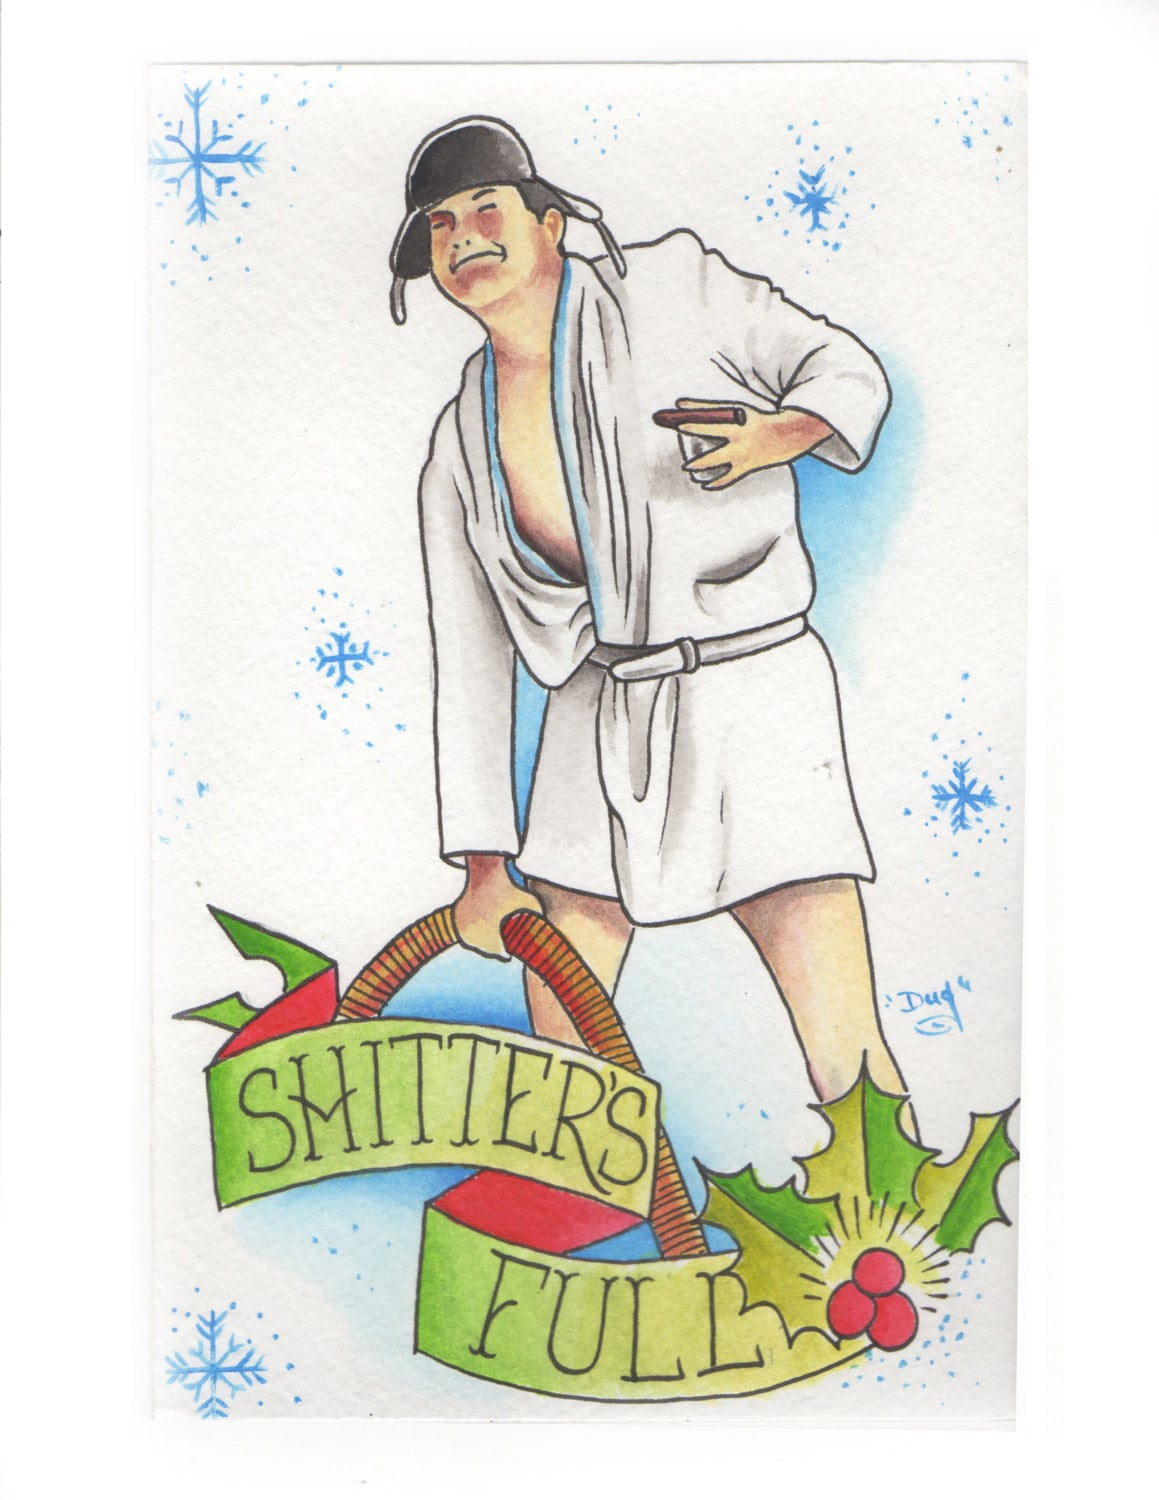 Cousin Eddie Art Based On The Movies National Lampoons